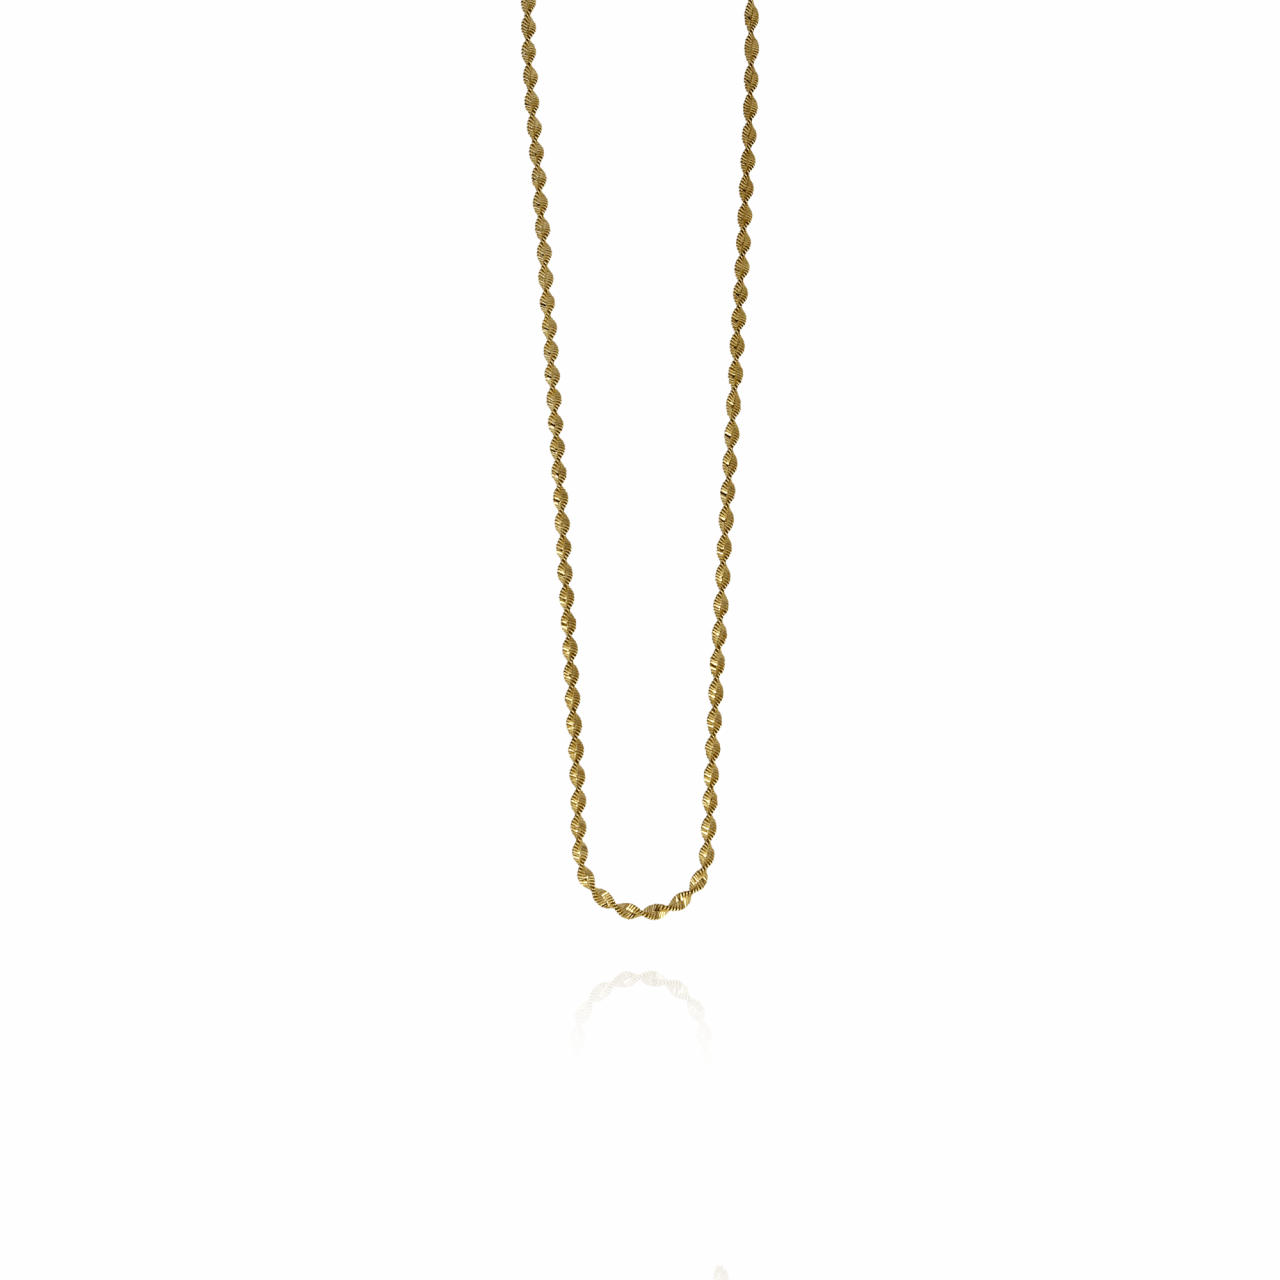 Gouden twisted chain ketting